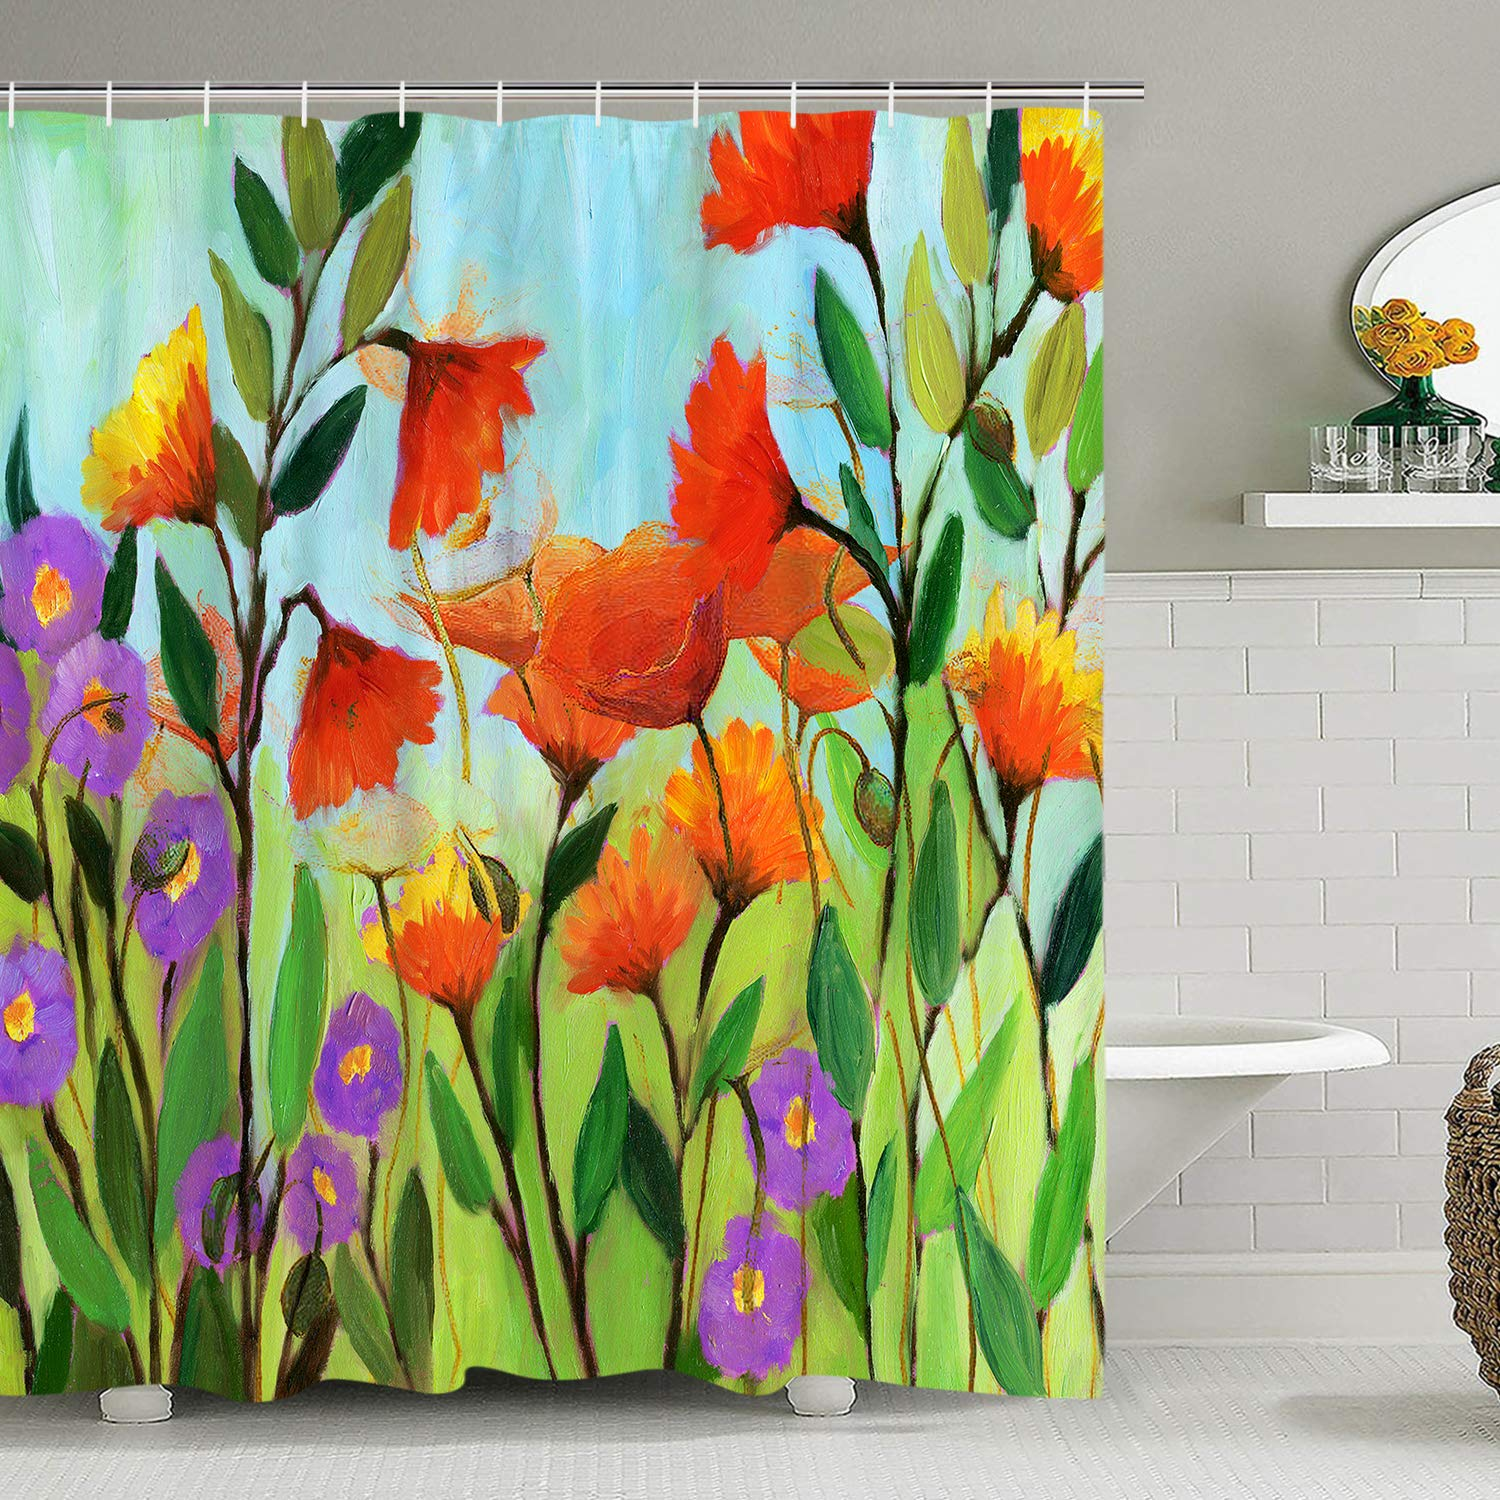 Vintage Shower Curtain Water Color Print Bathroom Curtain Abstract Flowers and Leaves